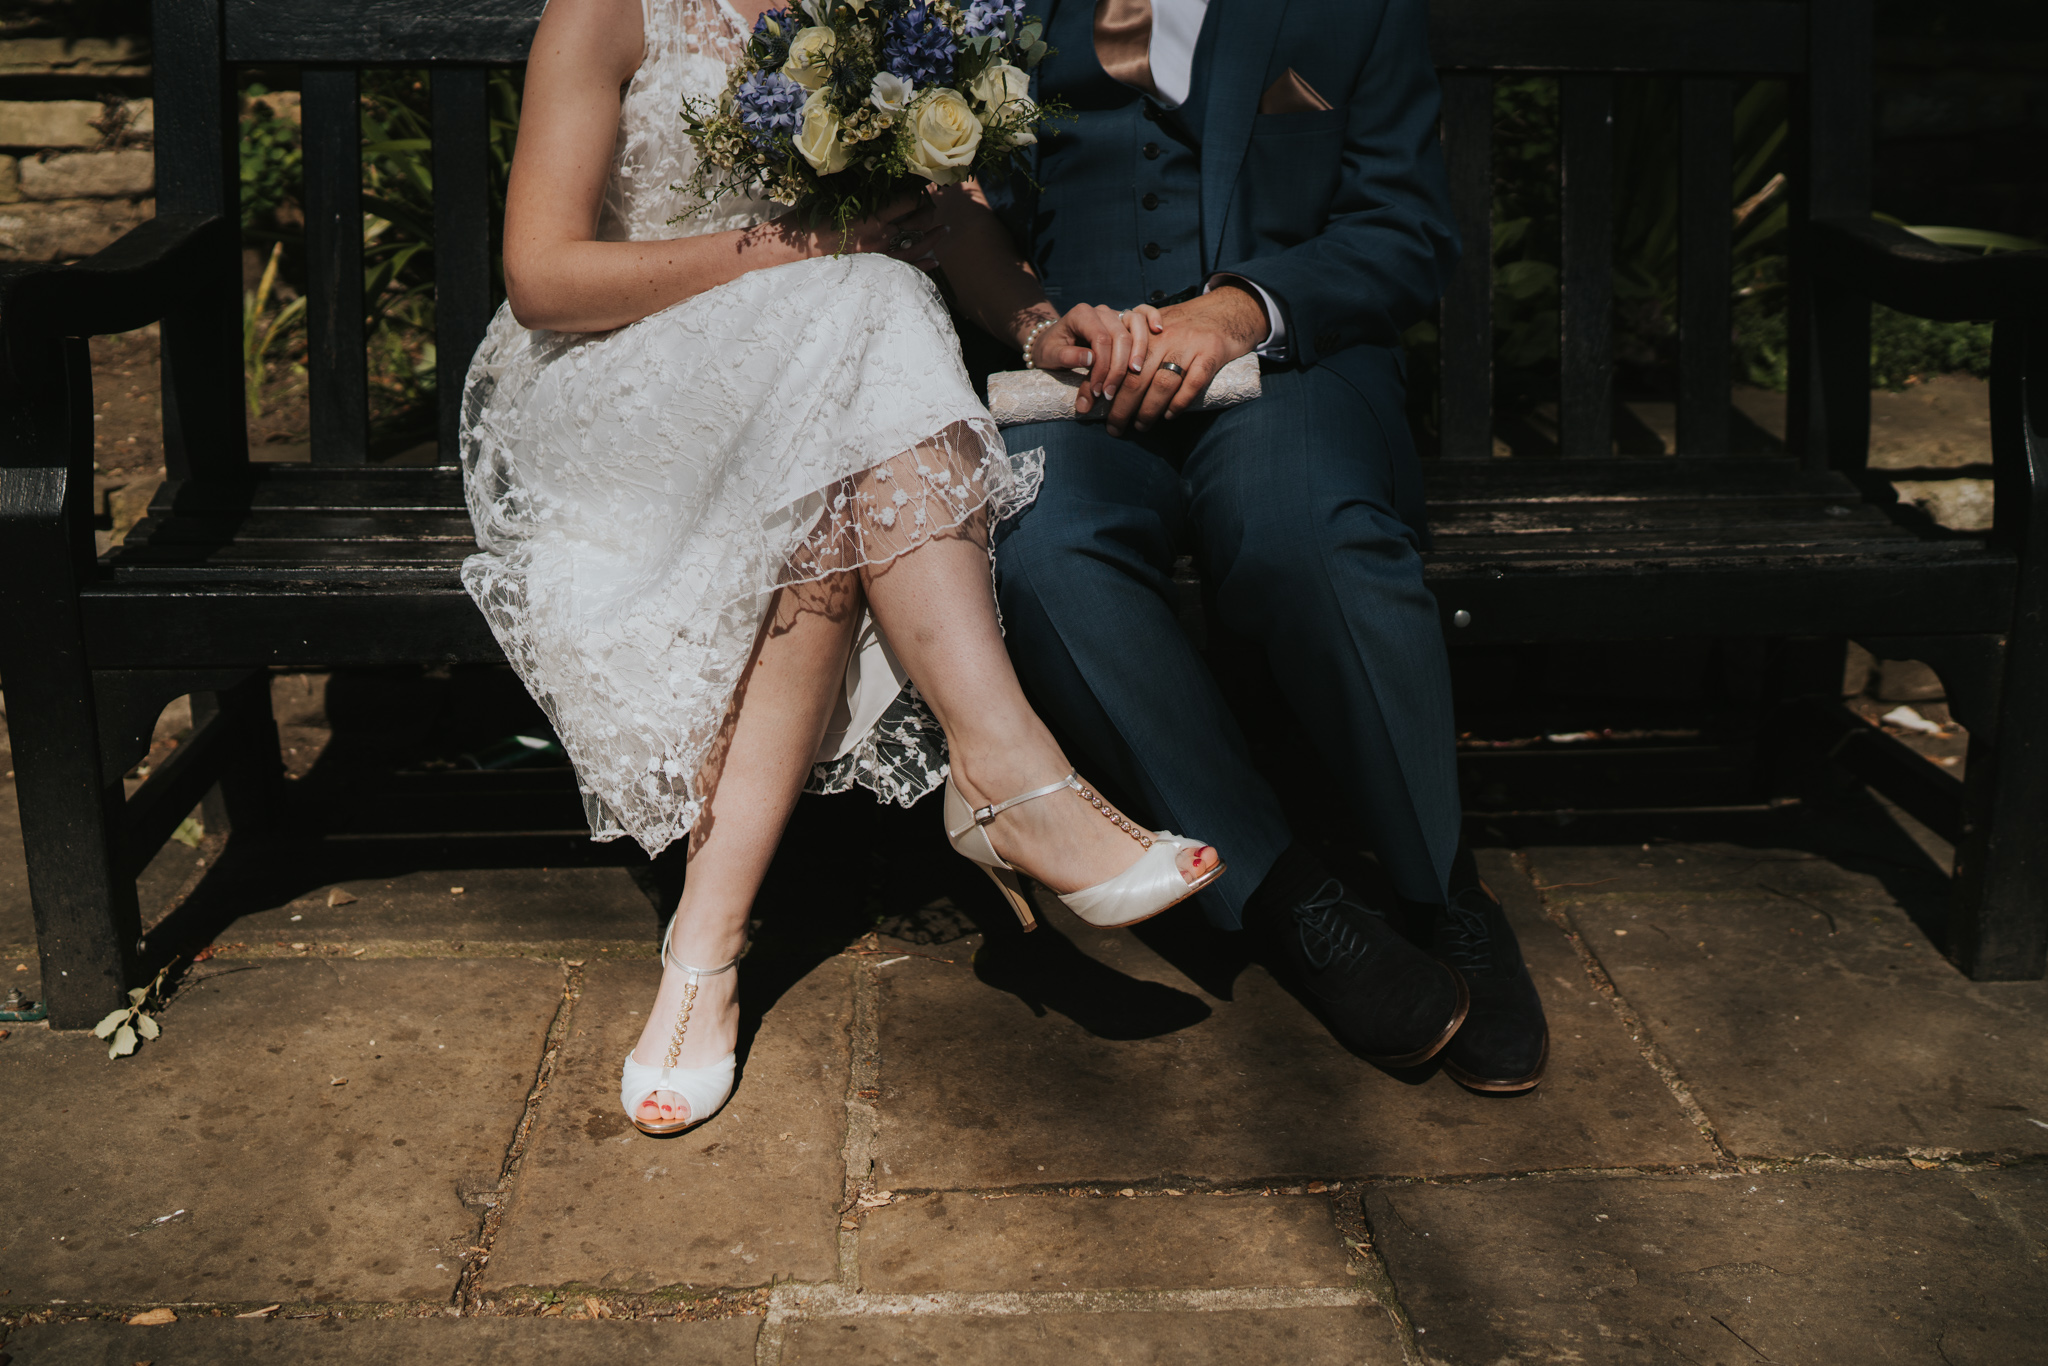 rhian-ali-colchester-essex-town-elopement-alternative-wedding-photographer-grace-elizabeth-essex-suffolk-norfolk-devon (64 of 81).jpg